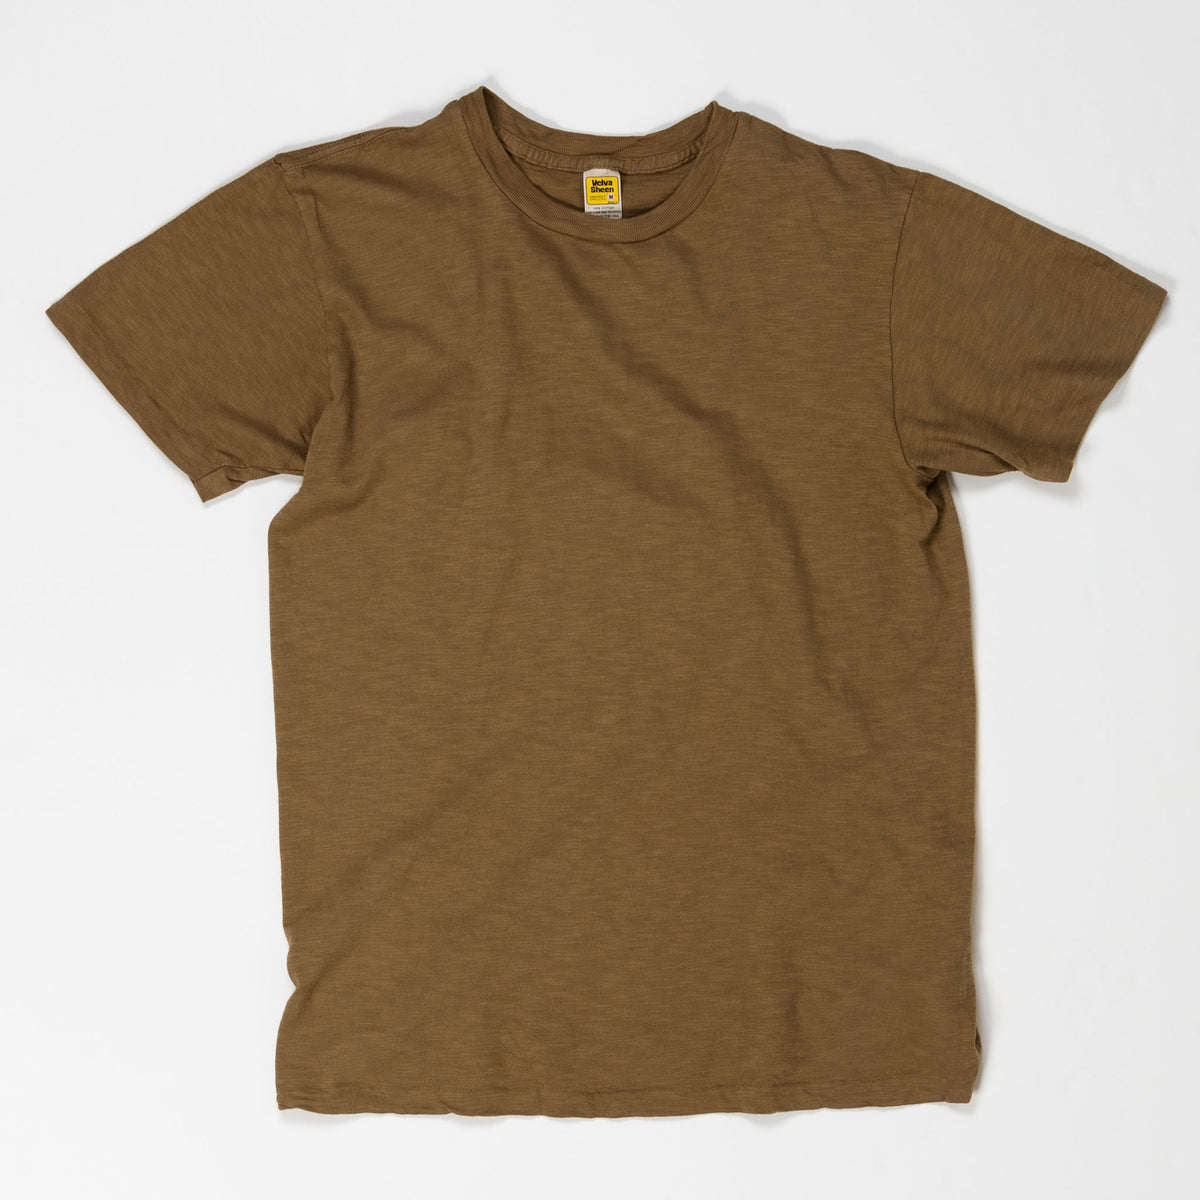 Regular Short Sleeve Tee - Olive